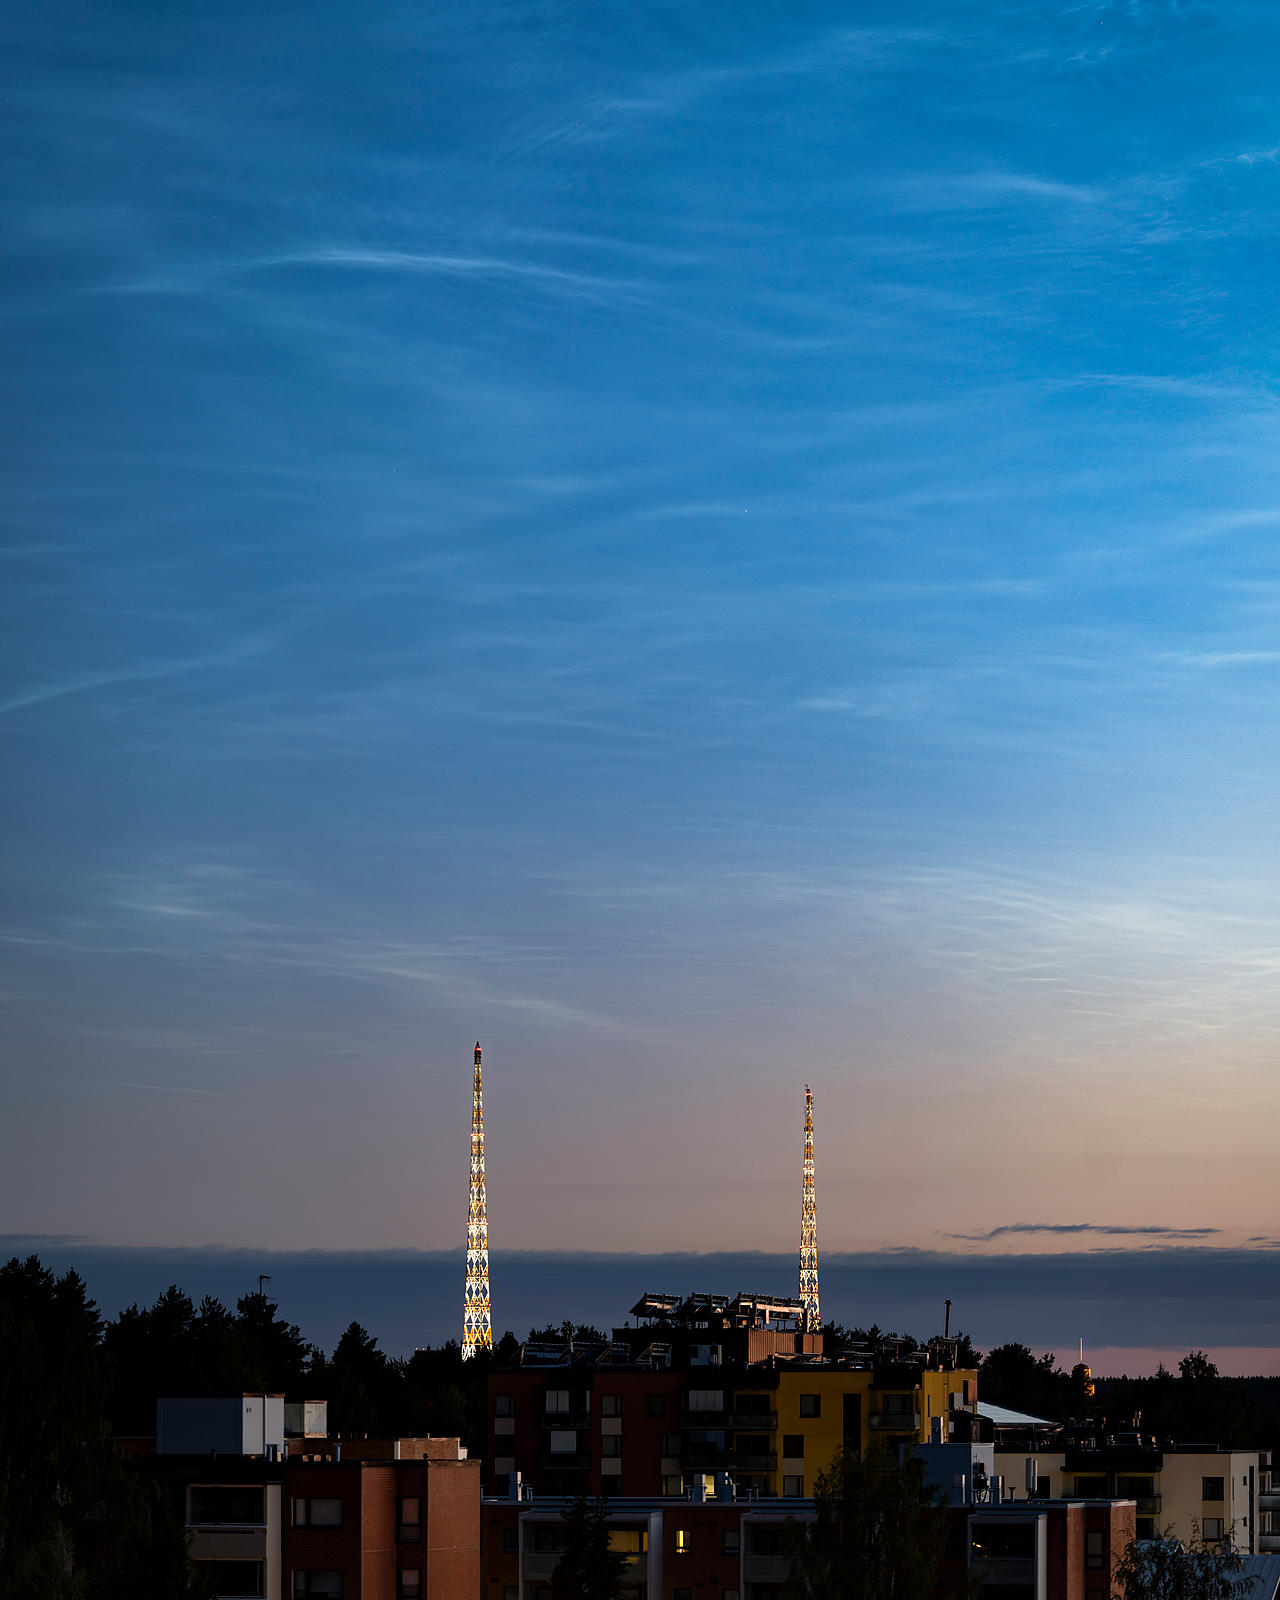 Noctilucent Clouds (NLCs) above the landscape in Lahti, Southern Finland on July 10 2018.